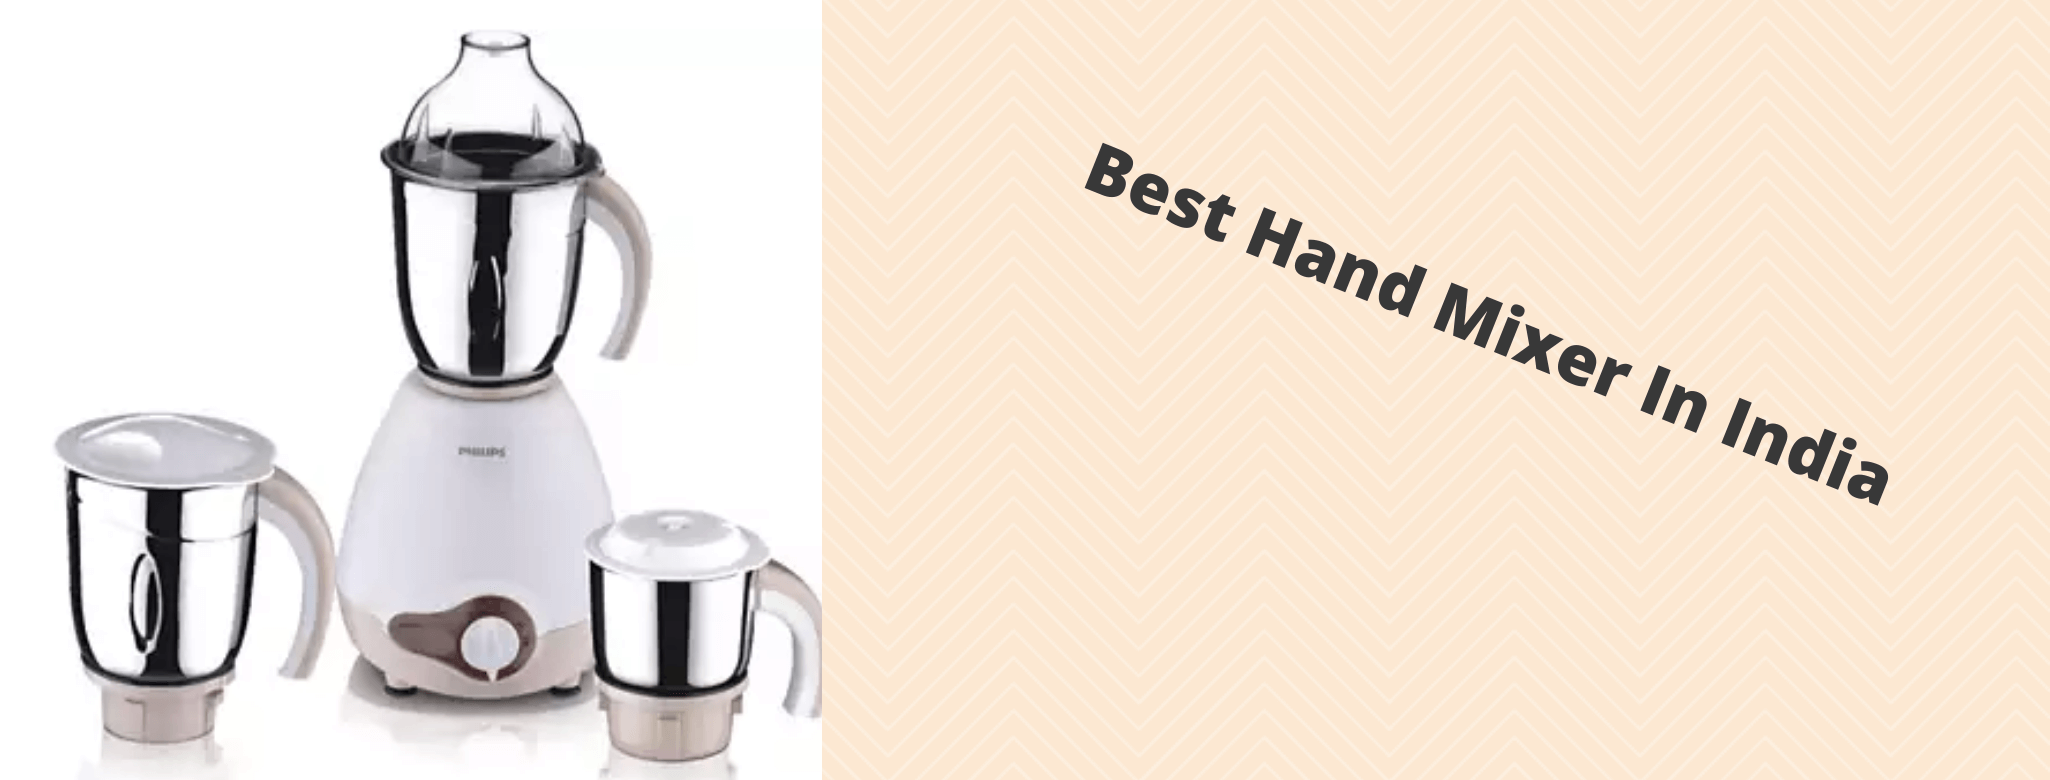 Best Hand Mixer In India